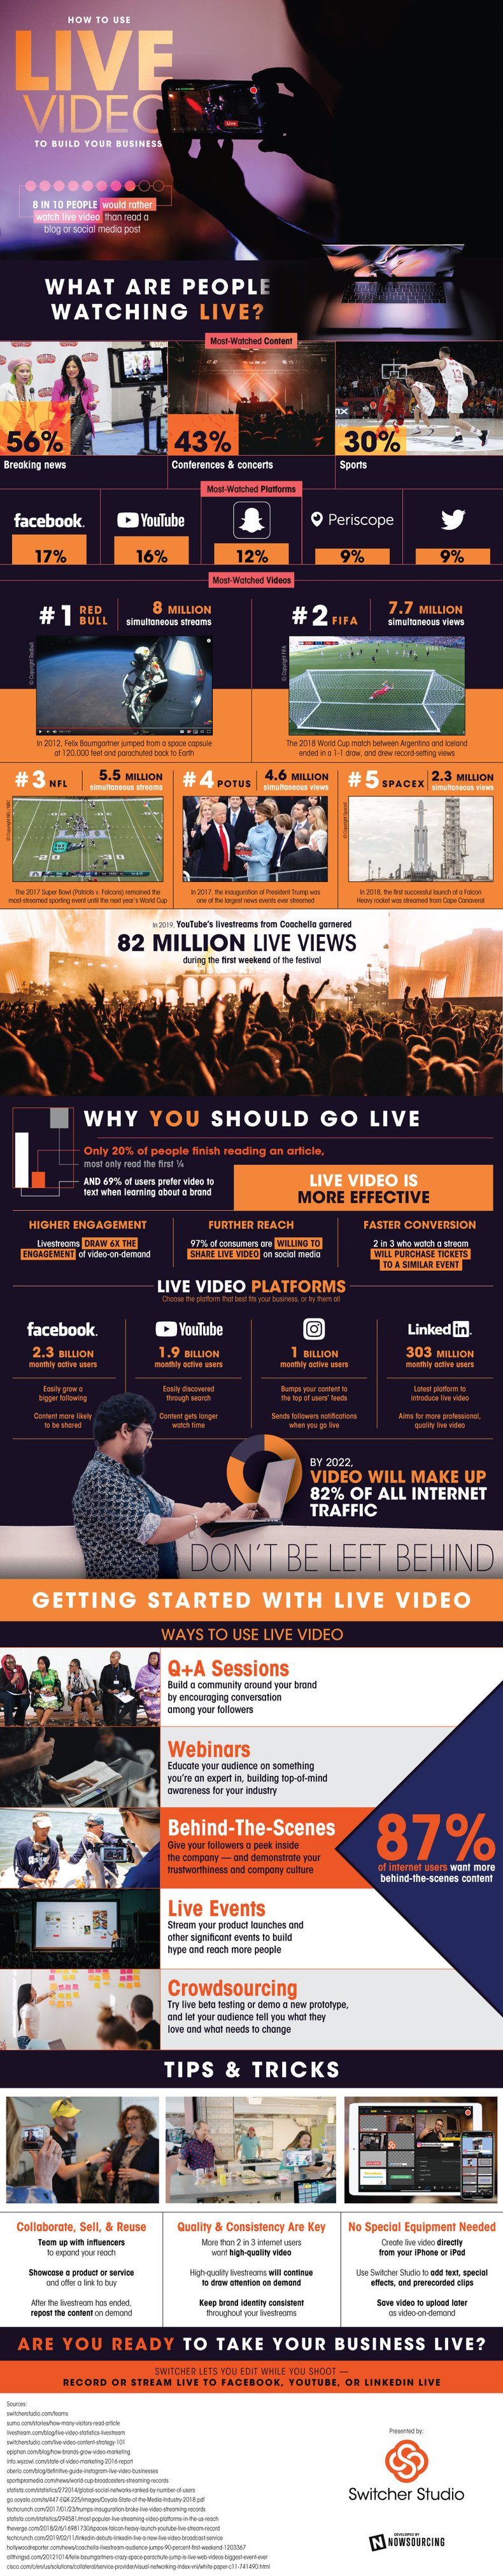 How to Use Live Video for Marketing Your Business 1